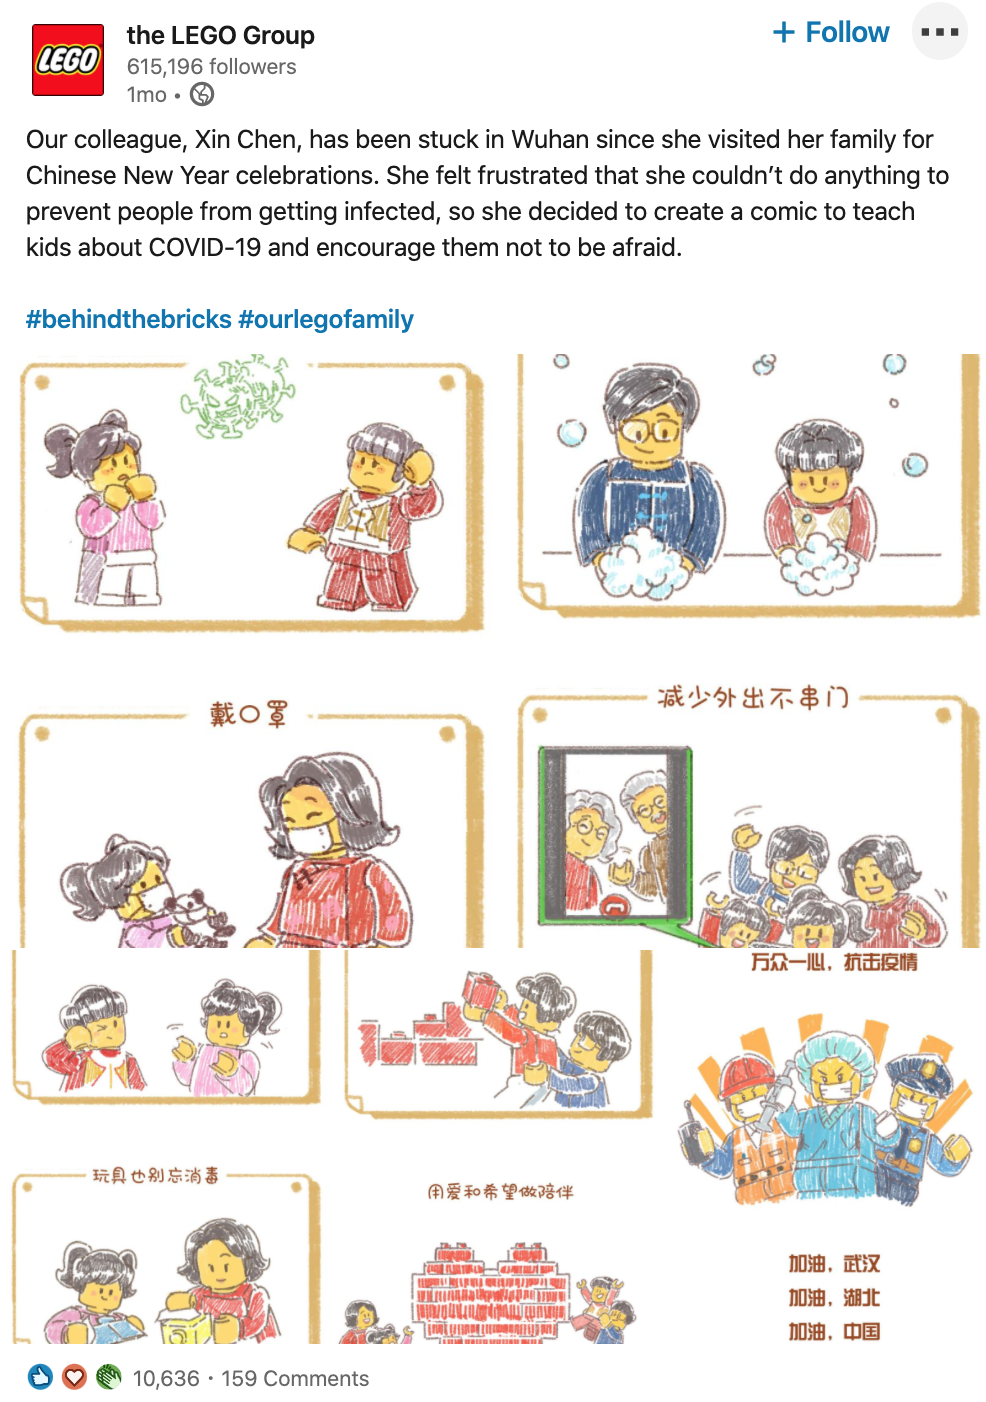 Screenshot of post from The Lego Group's LinkedIn company page:  Our colleague, Xin Chen, has been stuck in Wuhan since she visited her family for Chinese New Year celebrations. She felt frustrated that she couldn't do anything to prevent people from getting infected, so she decided to create a comic to teach kids about COVID-19 and encourage them not to be afraid.  #behindthebricks #ourlegofamily  [[includes photos of the comic featuring LEGO figurines]]